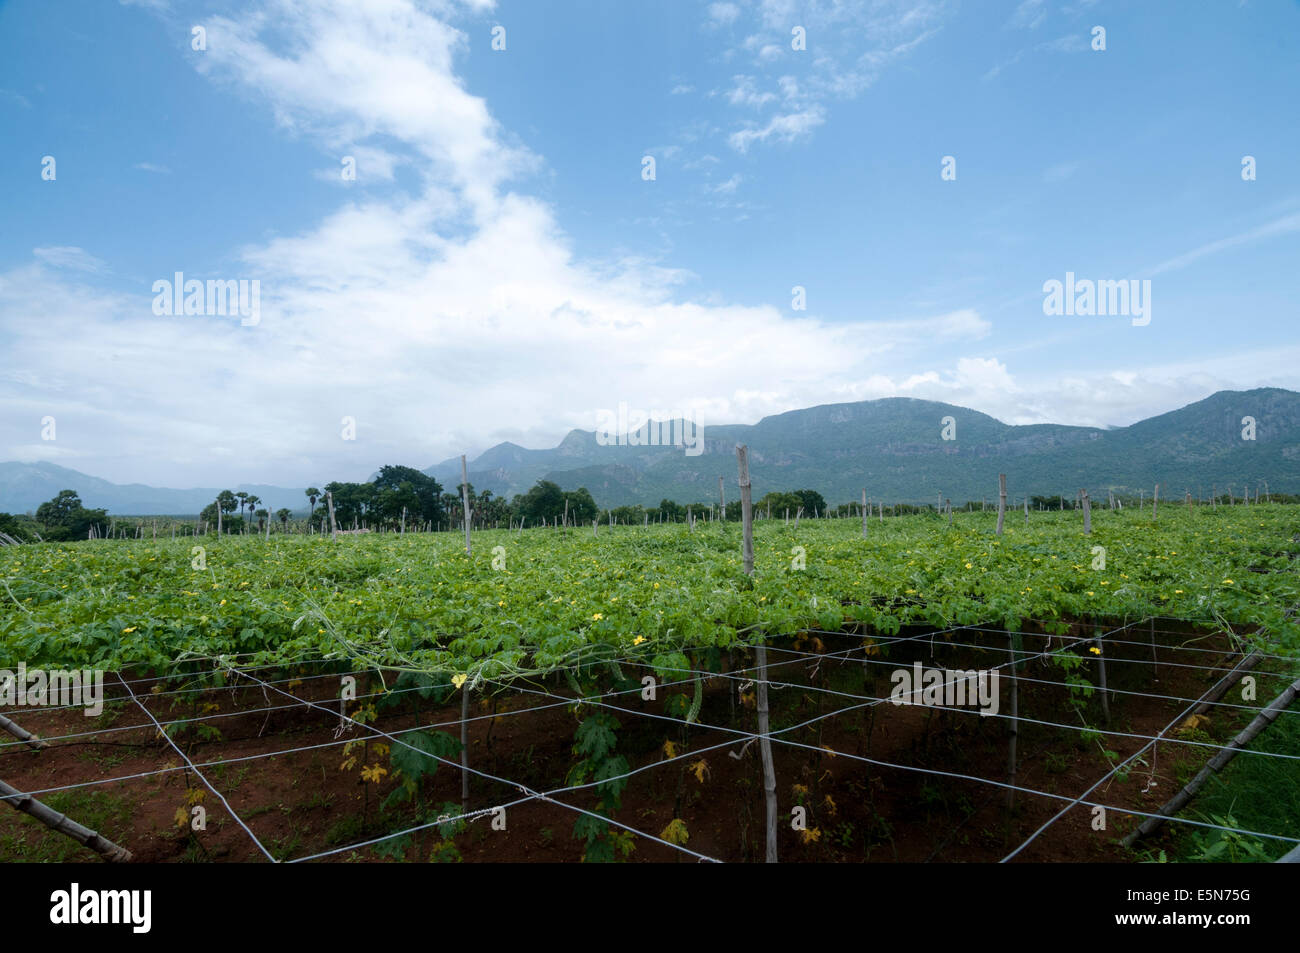 Bitter gourd cultivation in palakkad - Stock Image